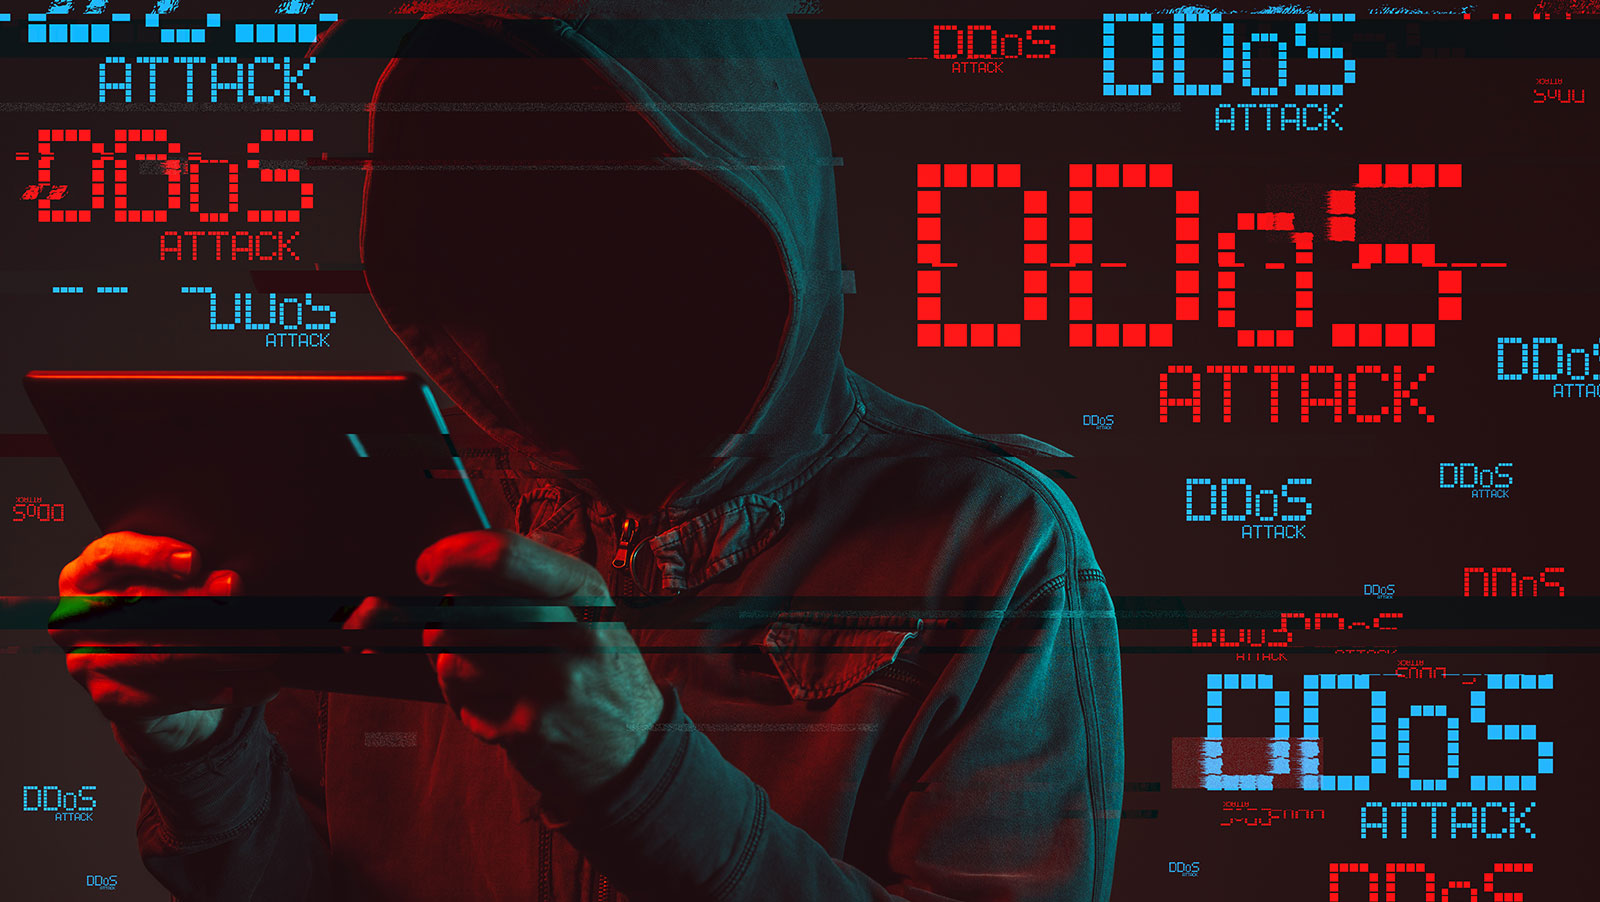 Anarchy at Americas Cardroom as DDoS attacks continue into the week